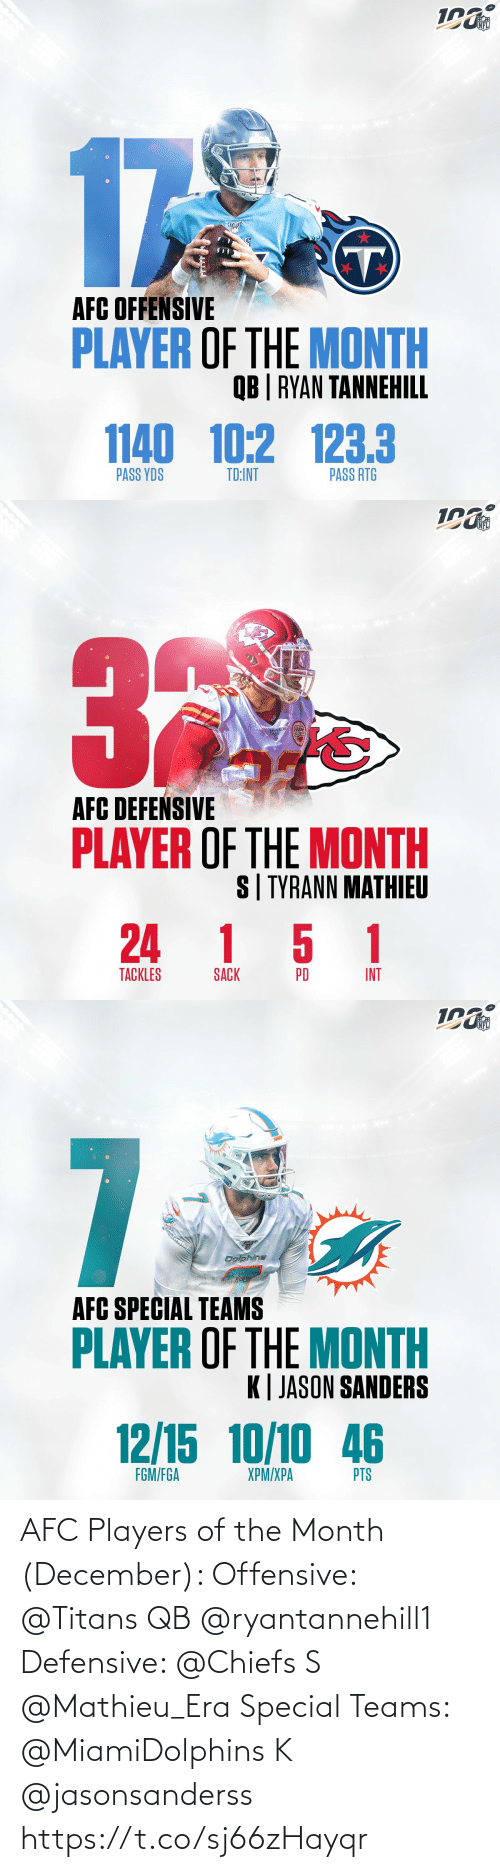 Defensive: NFL  17  AFC OFFENSIVE  PLAYER OF THE MONTH  QB | RYAN TANNEHILL  1140 10:2 123.3  PASS RTG  PASS YDS  TD:INT   NFL  AFC DEFEŃSIVE  PLAYER OF THE MONTH  S| TYRANN MATHIEU  24 1 5 1  TACKLES  INT  PD  SACK   NFL  7  Dolphins  AFC SPECIAL TEAMS  PLAYER OF THE MONTH  K| JASON SANDERS  12/15 10/10 46  FGM/FGA  XPM/XPA  PTS AFC Players of the Month (December):   Offensive: @Titans QB @ryantannehill1    Defensive: @Chiefs S @Mathieu_Era   Special Teams: @MiamiDolphins K @jasonsanderss https://t.co/sj66zHayqr